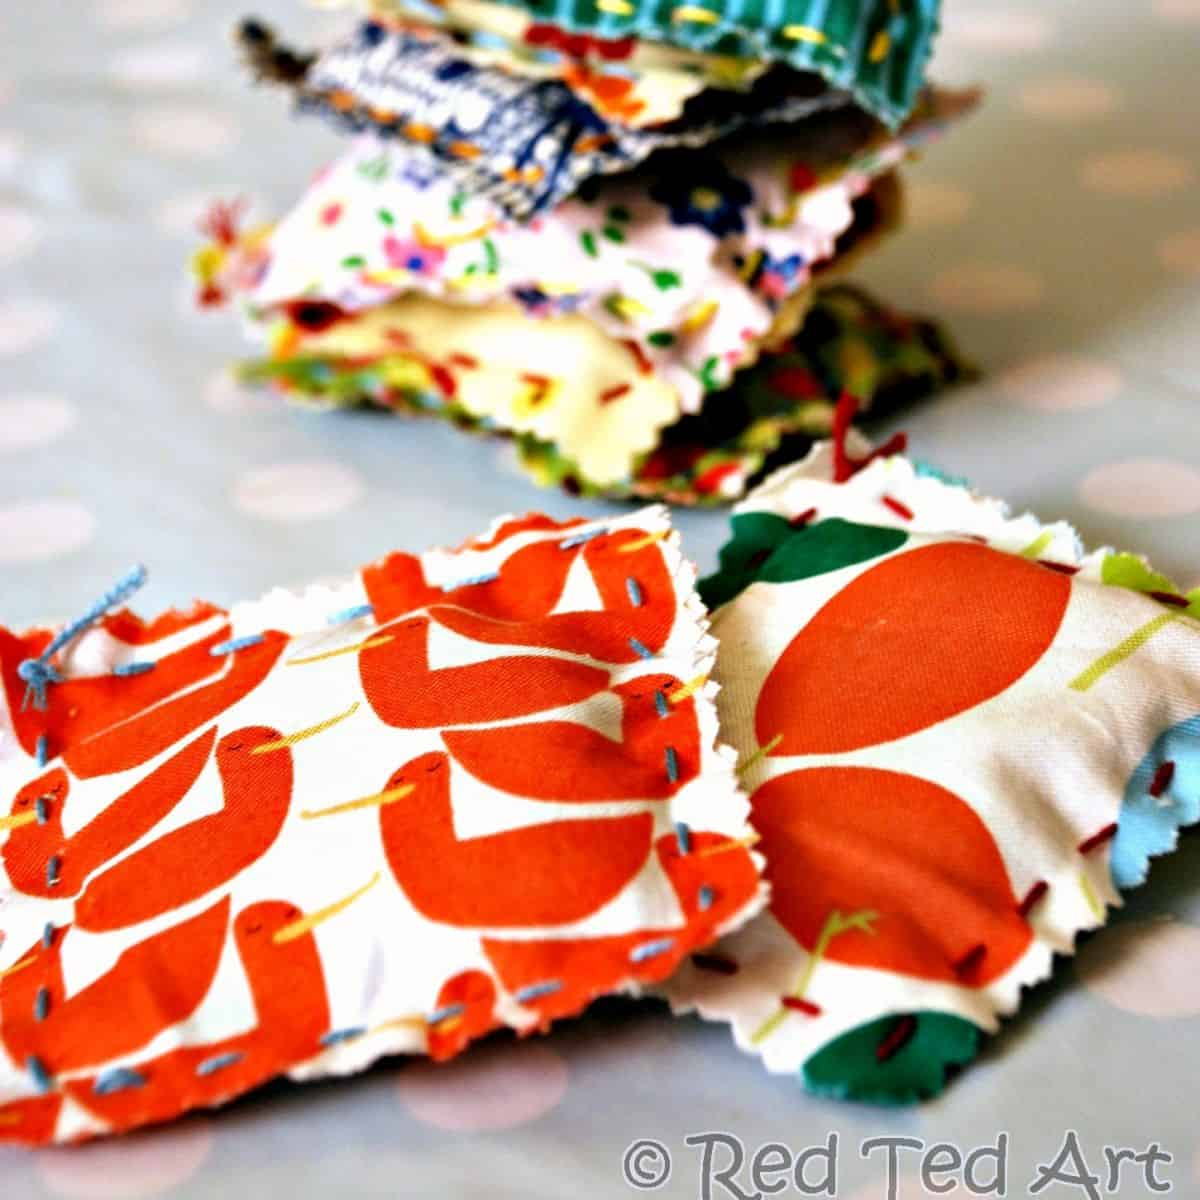 10 EASY SEWING PROJECTS FOR KIDS